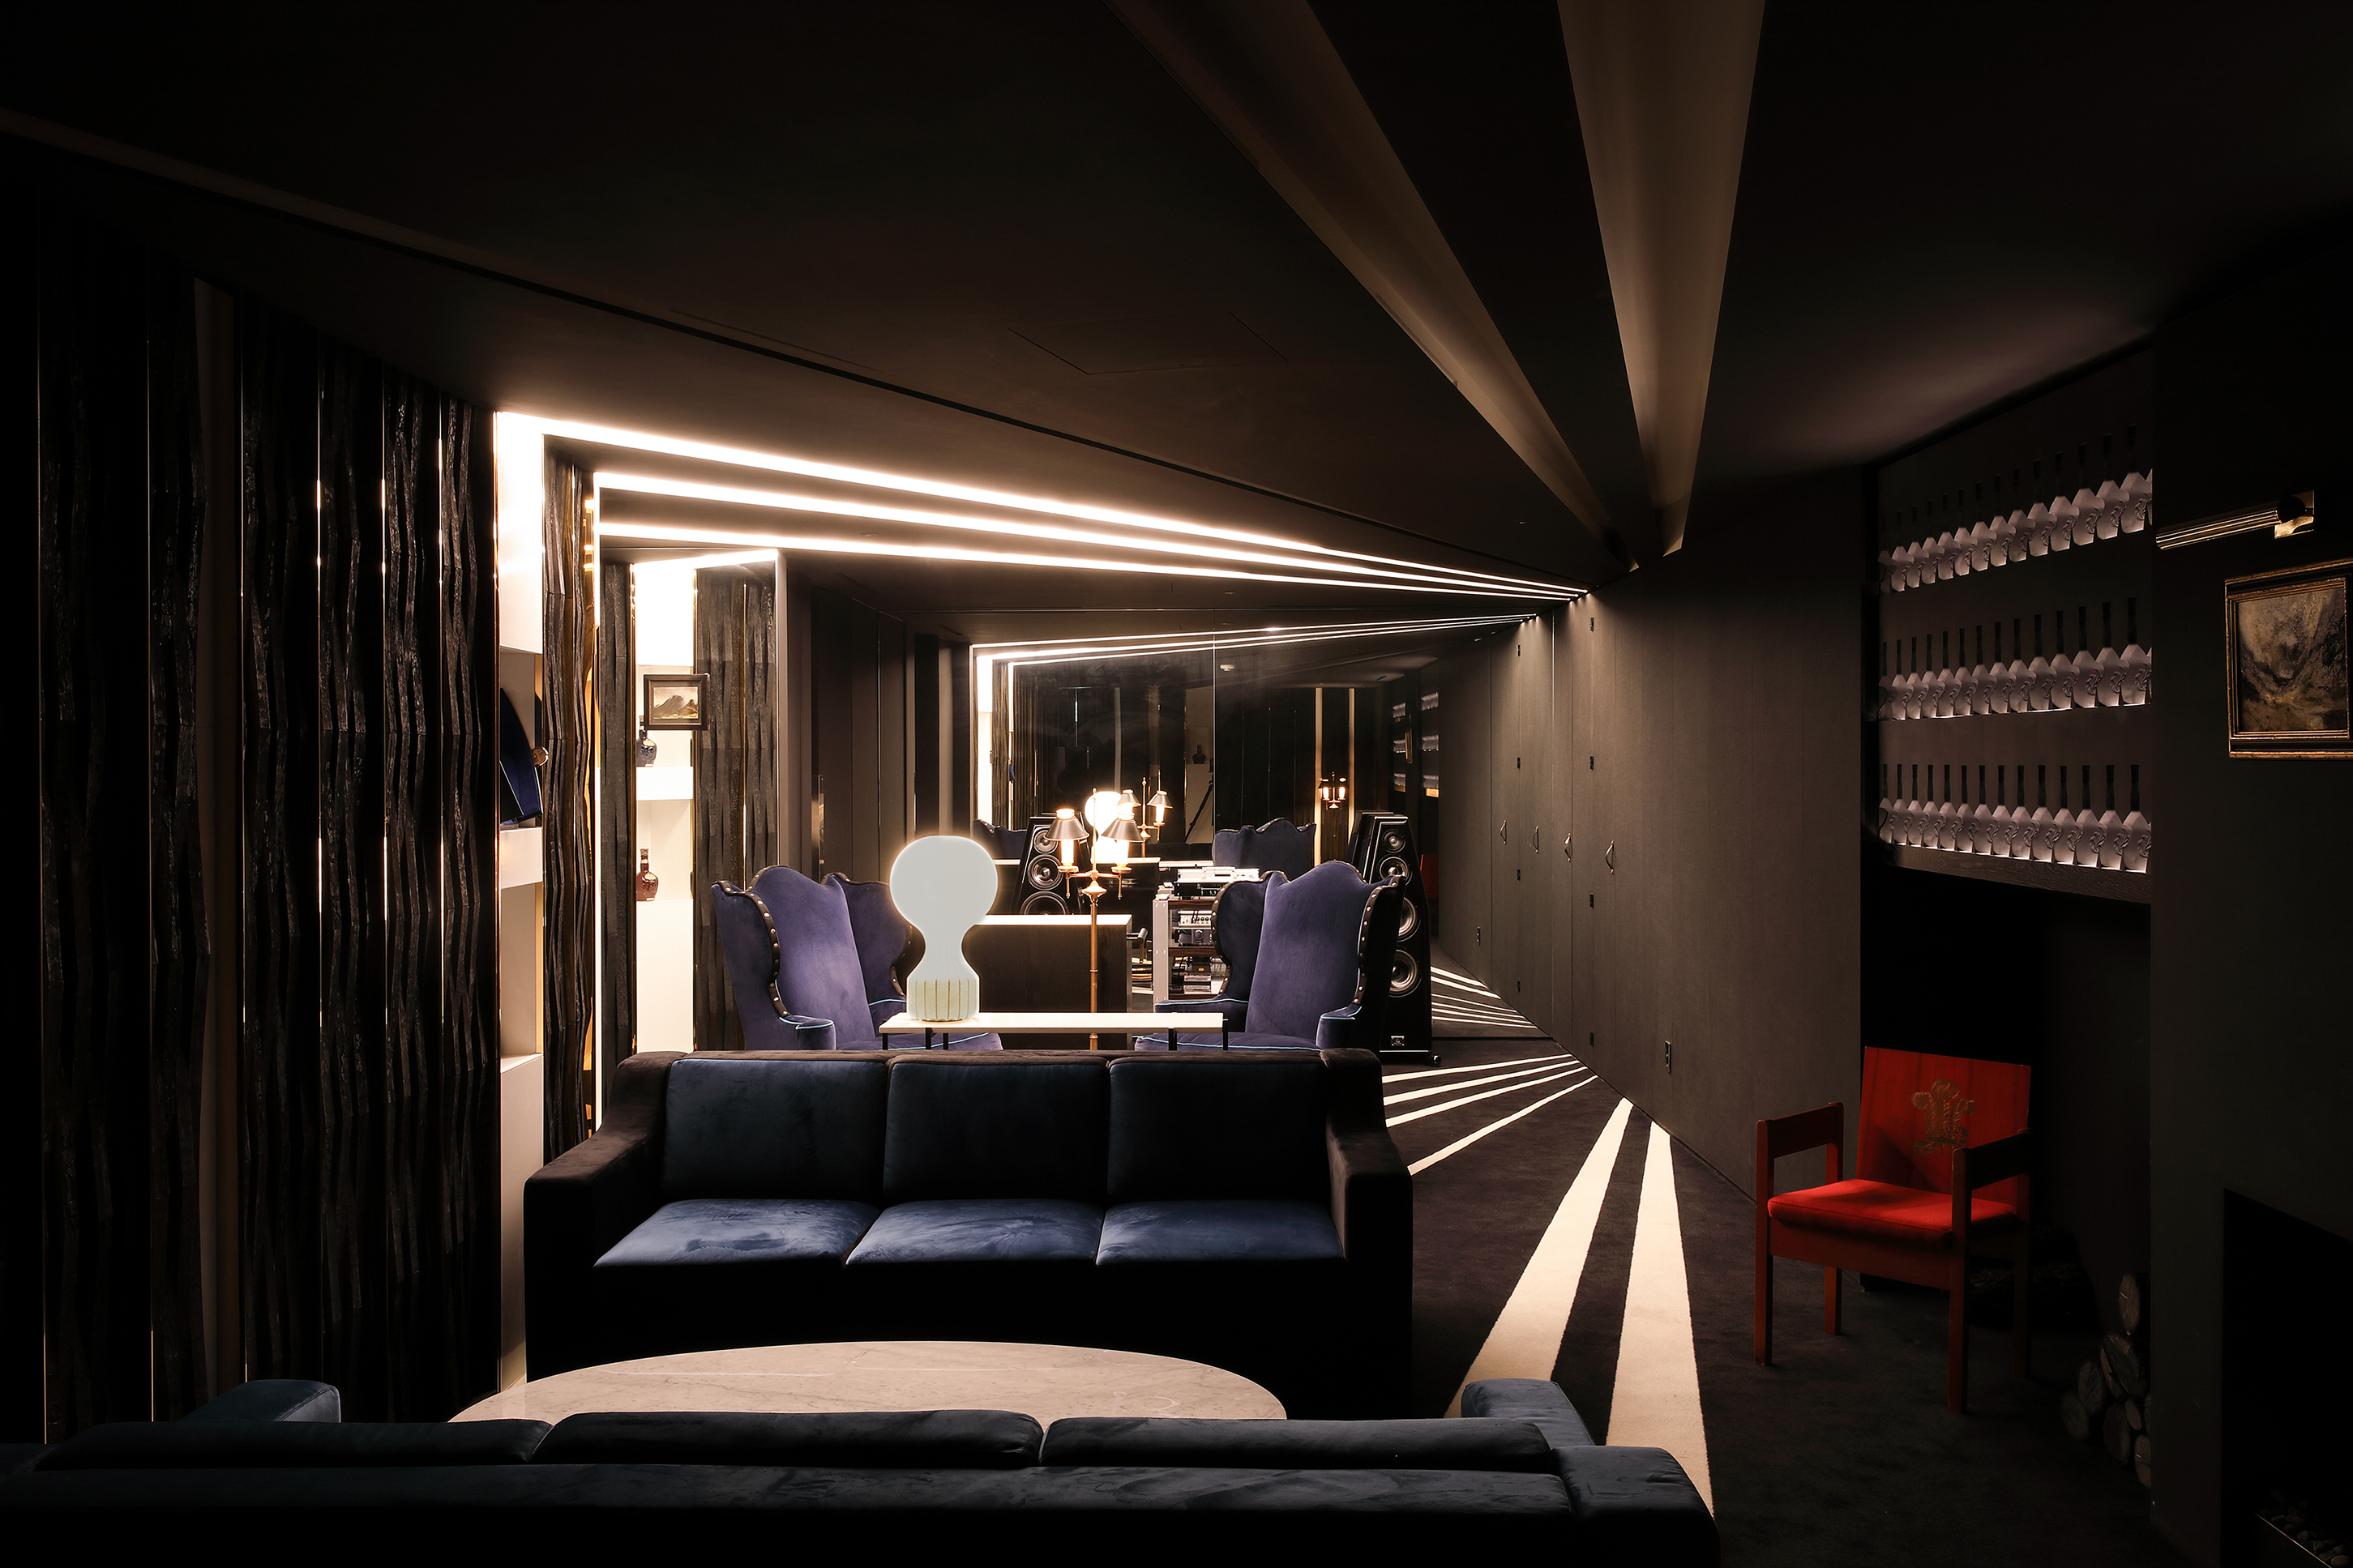 View of the VIP Salon with uplit shelves of whisky bottles cast into the walls.